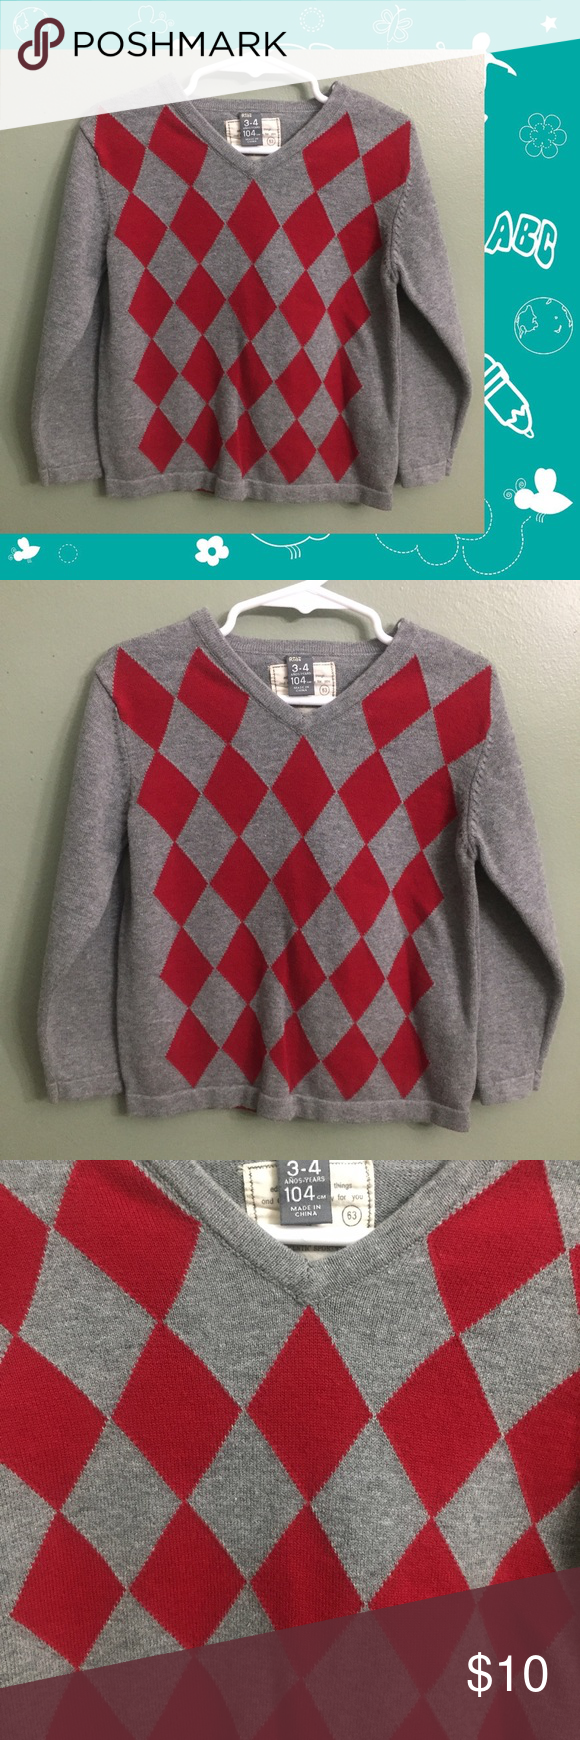 EUC Zara Kids Gray/Red Sweater, 3-4Y | Zara kids, Red sweaters and ...